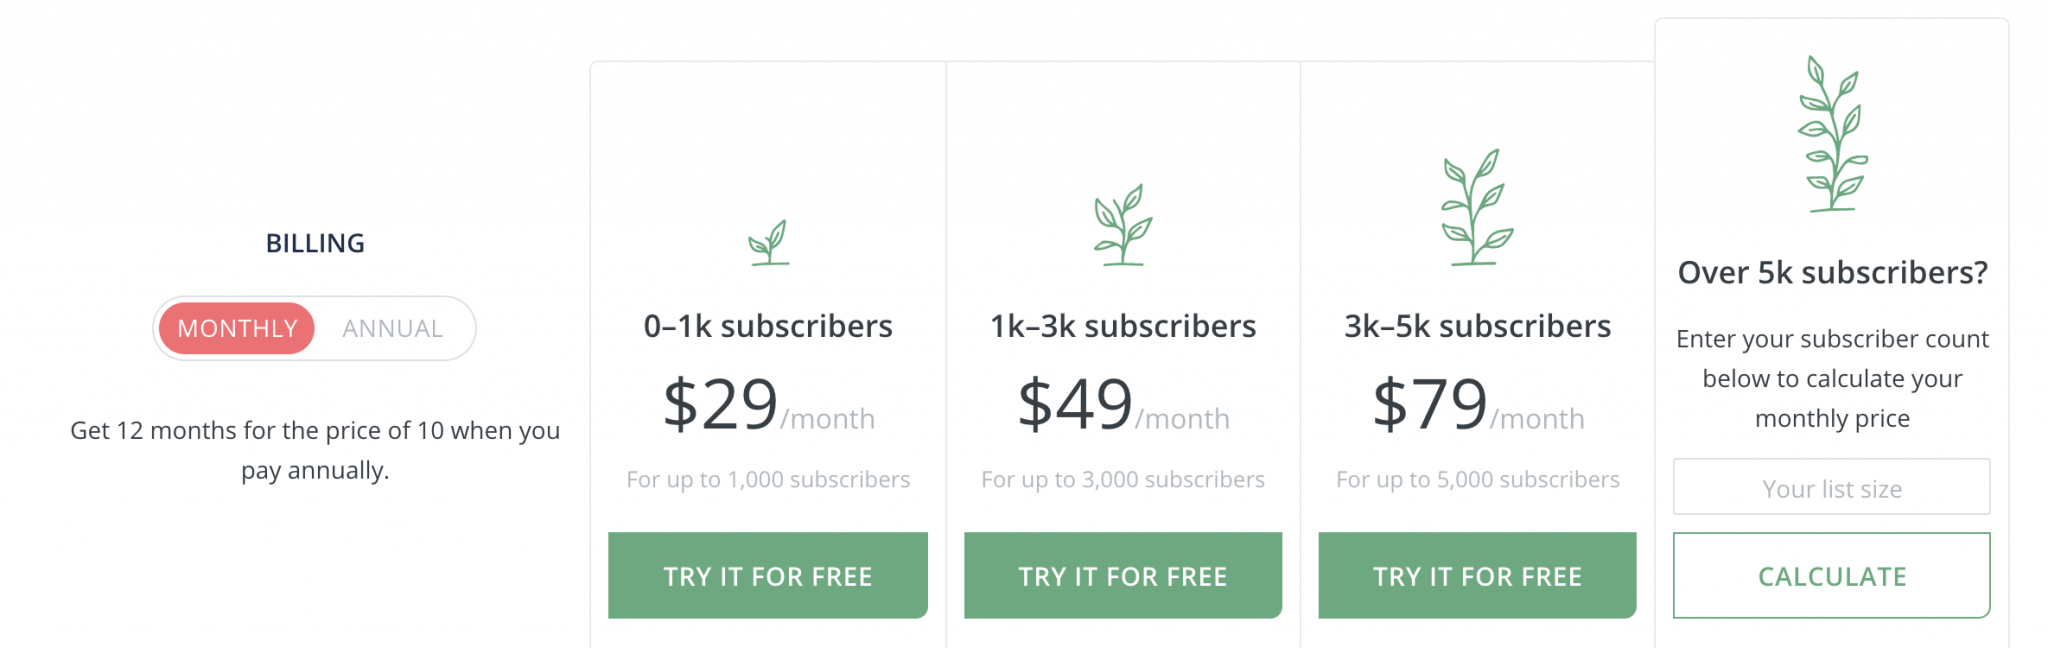 Convertkit Email Marketing Verified Discount Voucher Code Printable May 2020